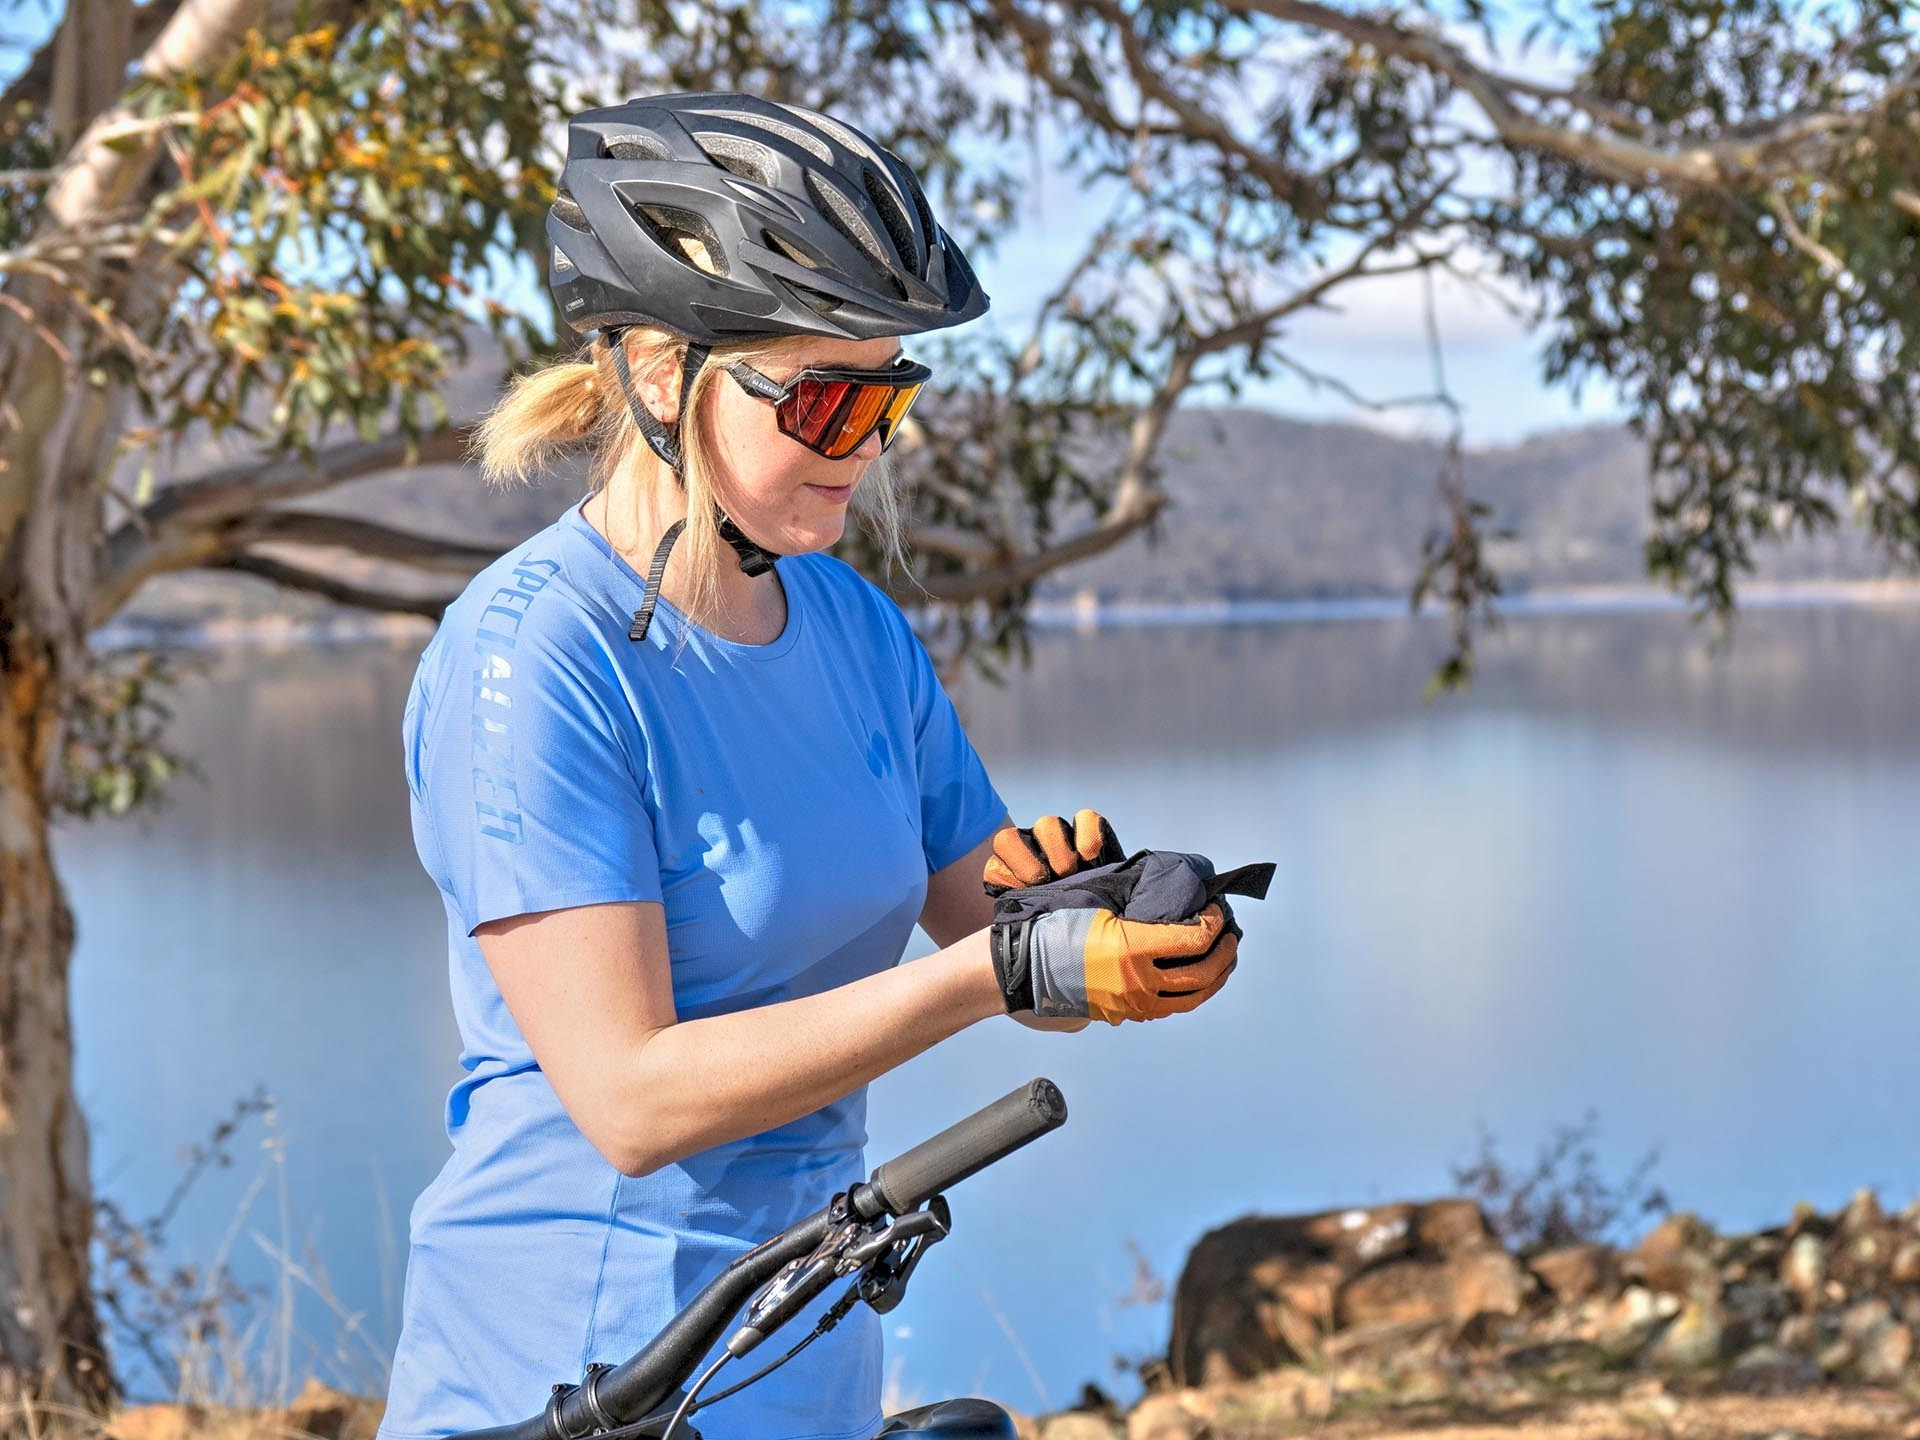 Specialized MTB Apparel Review_Photo by @expedimage - of Kate Donald Mountain Biking in Jindabyne. MTB Clothing, Womens MTB, Specialized Trail Air Short Sleeve Jersey